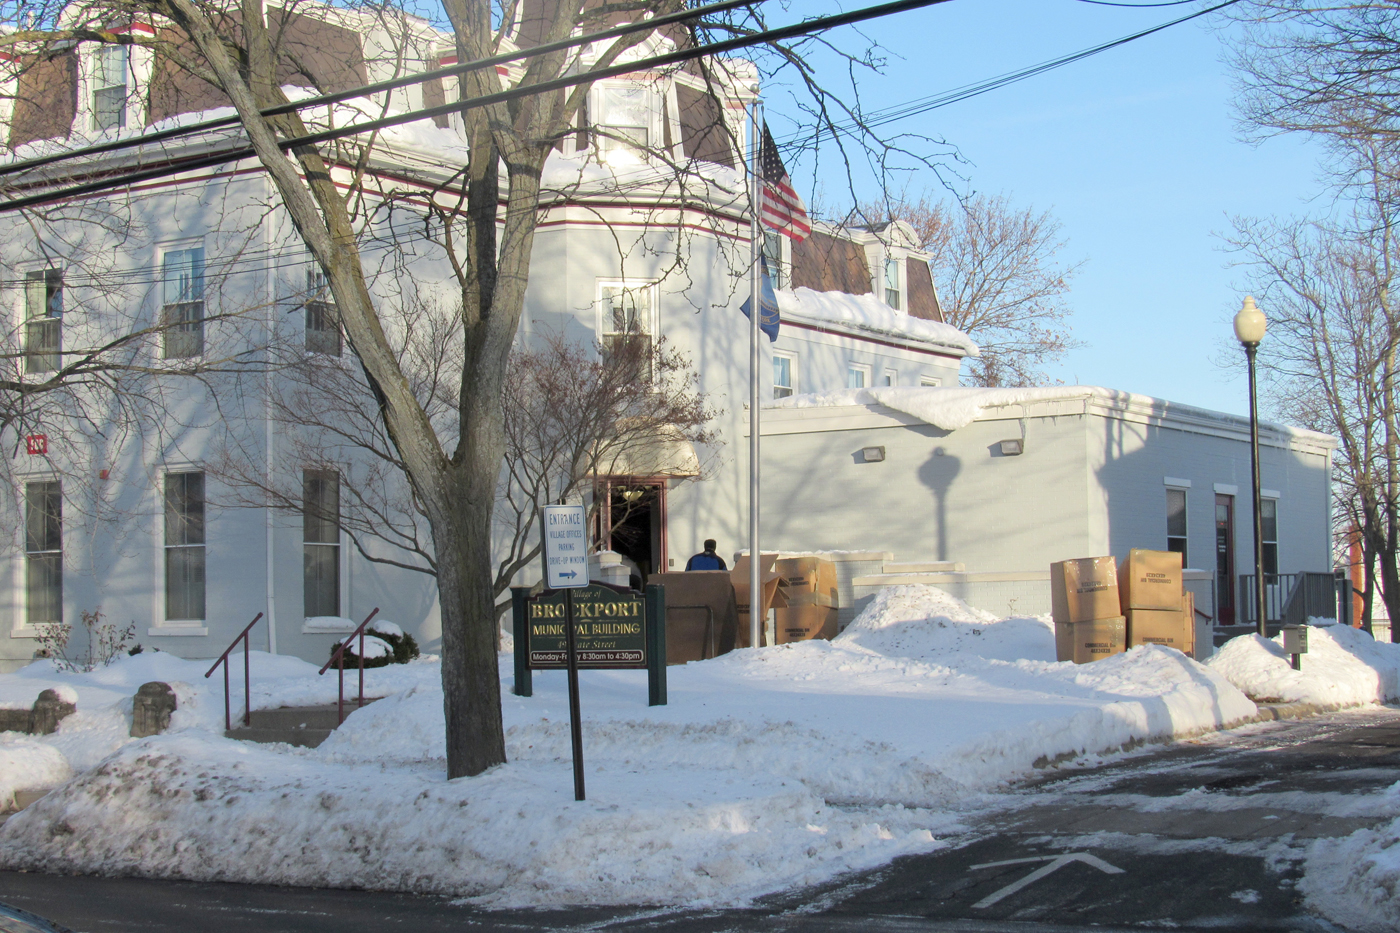 The former location of the Brockport Village Offices at 49 State Street. The location will continue to house the Village Court as well as serve as a meeting place for the Village, Zoning and Planning Boards.